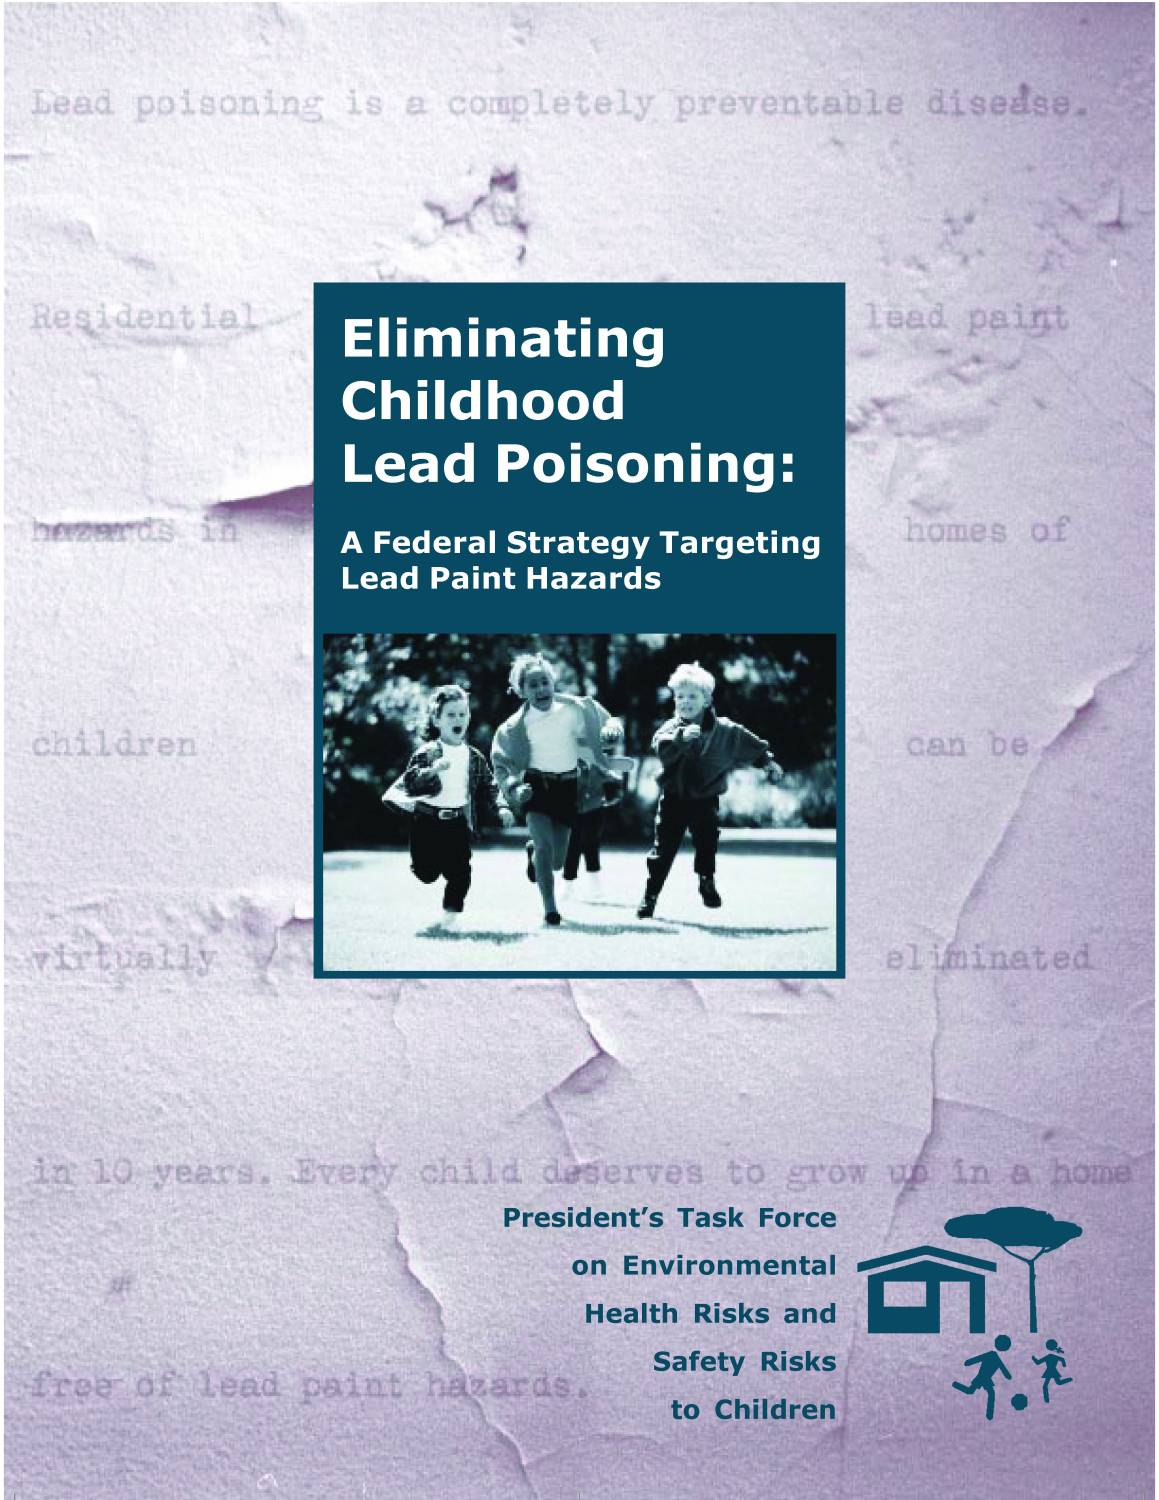 Eliminating Childhood Lead Poisoning: A Federal Strategy Targeting Lead Paint Hazards